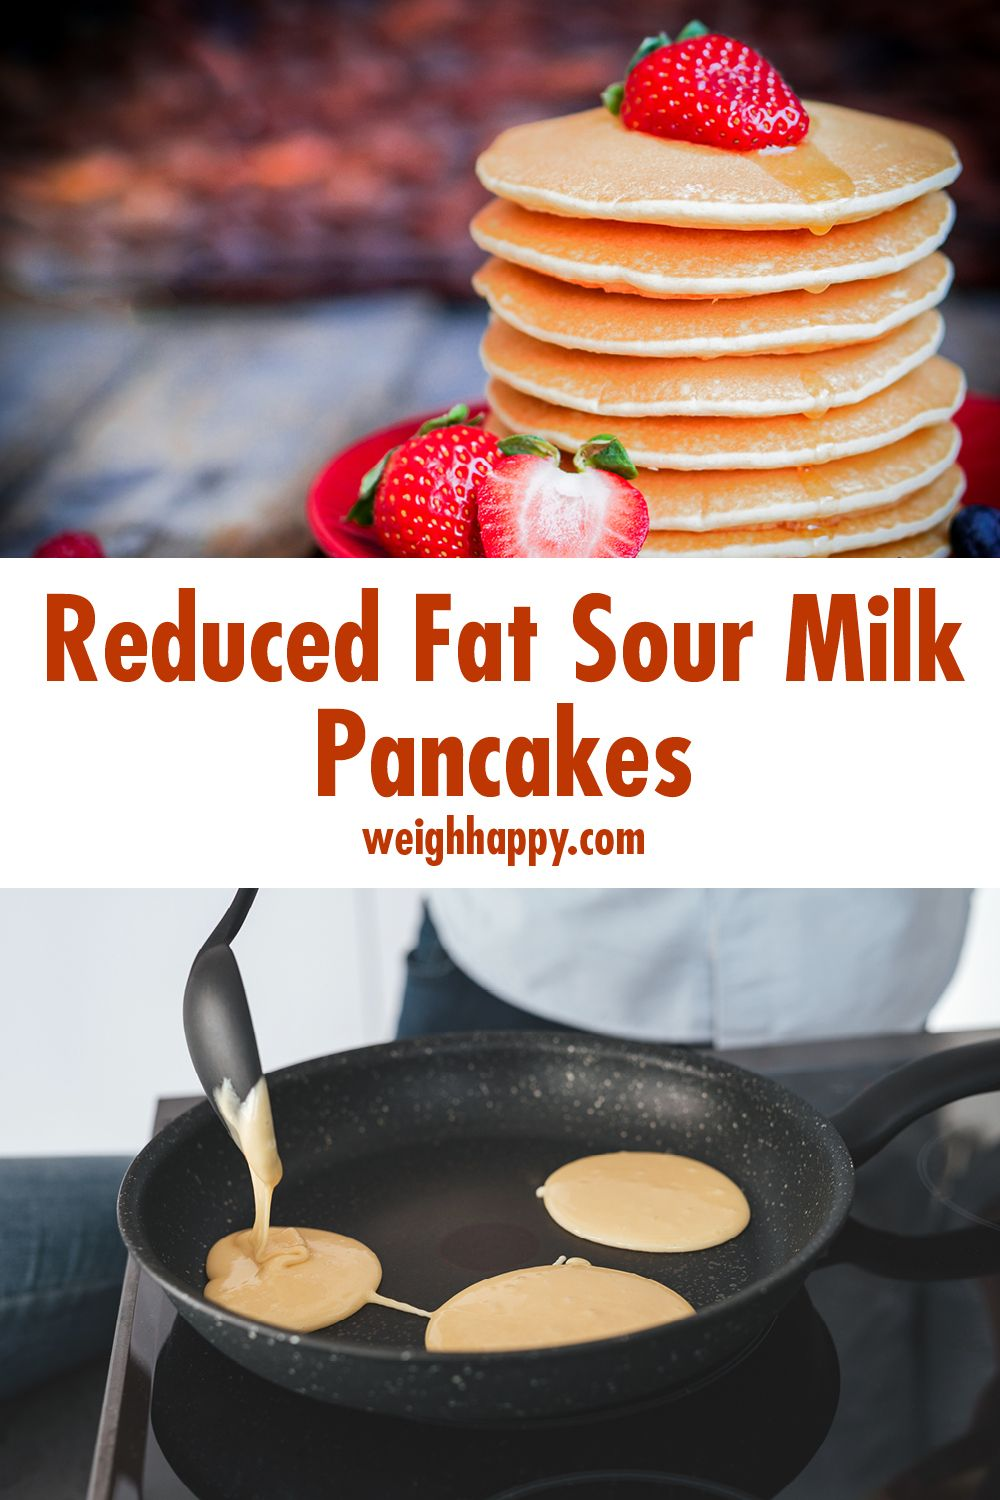 Lower Calorie Sour Milk Pancakes Easy And Healthy To Better Health Recipe Sour Milk Pancakes Sour Milk Recipes Soured Milk